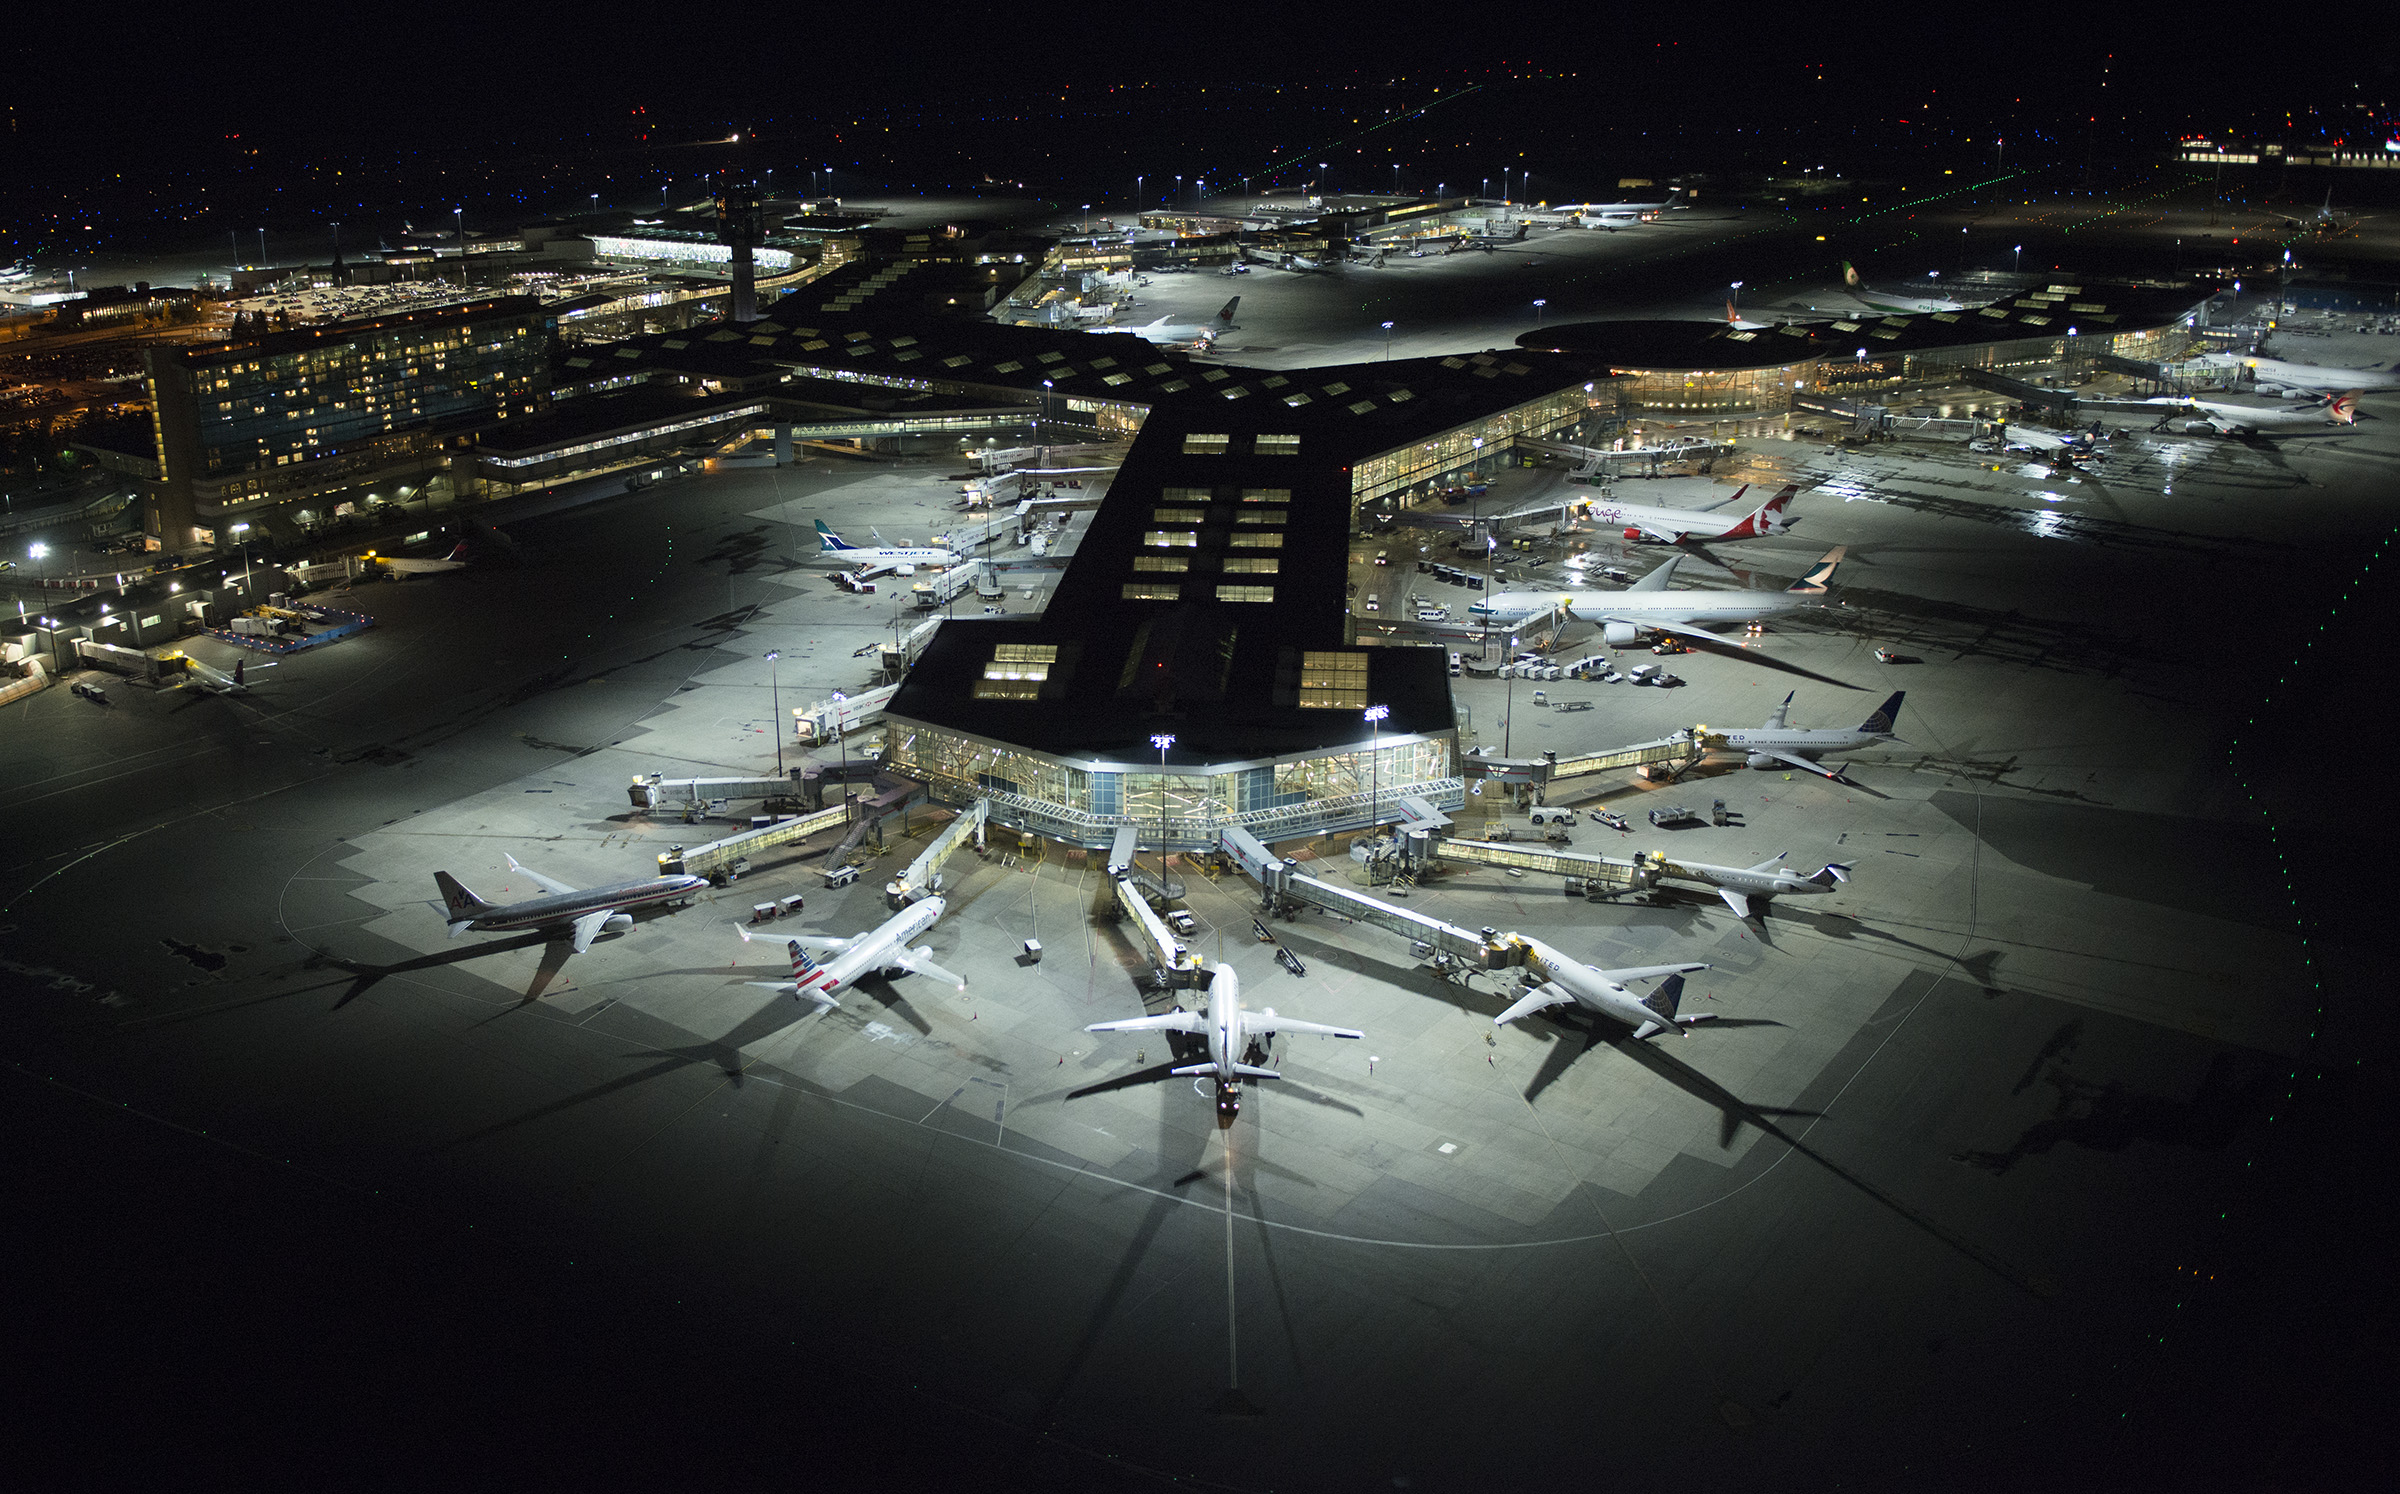 Apron Lighting at YVR at night